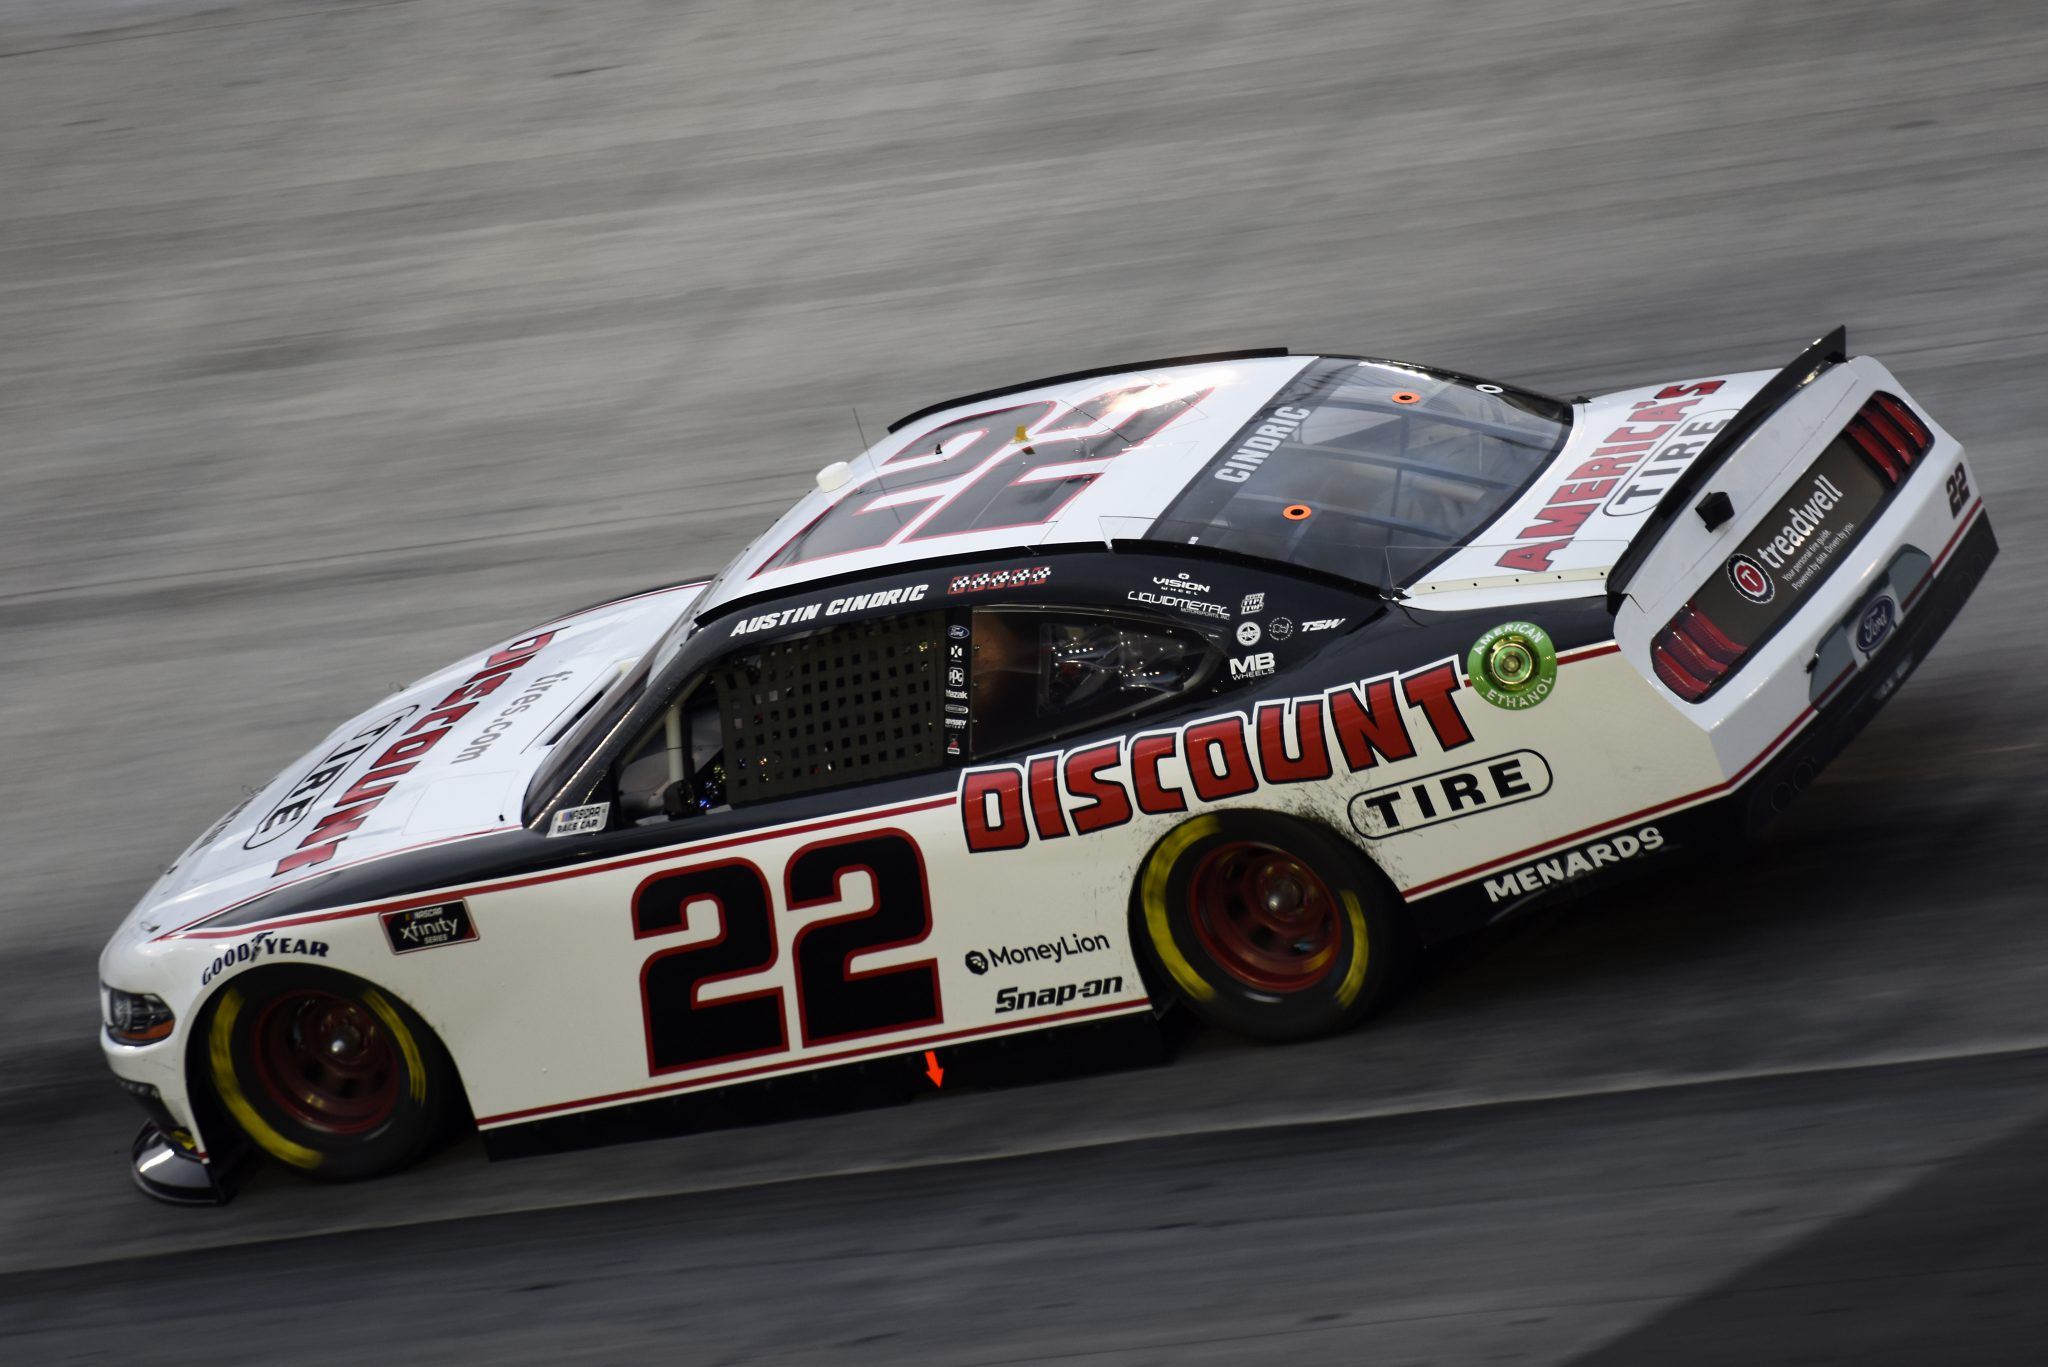 BRISTOL, TENNESSEE - SEPTEMBER 18: Austin Cindric, driver of the #22 Discount Tire Ford, drives during the NASCAR Xfinity Series Food City 300 at Bristol Motor Speedway on September 18, 2020 in Bristol, Tennessee. (Photo by Jared C. Tilton/Getty Images)   Getty Images